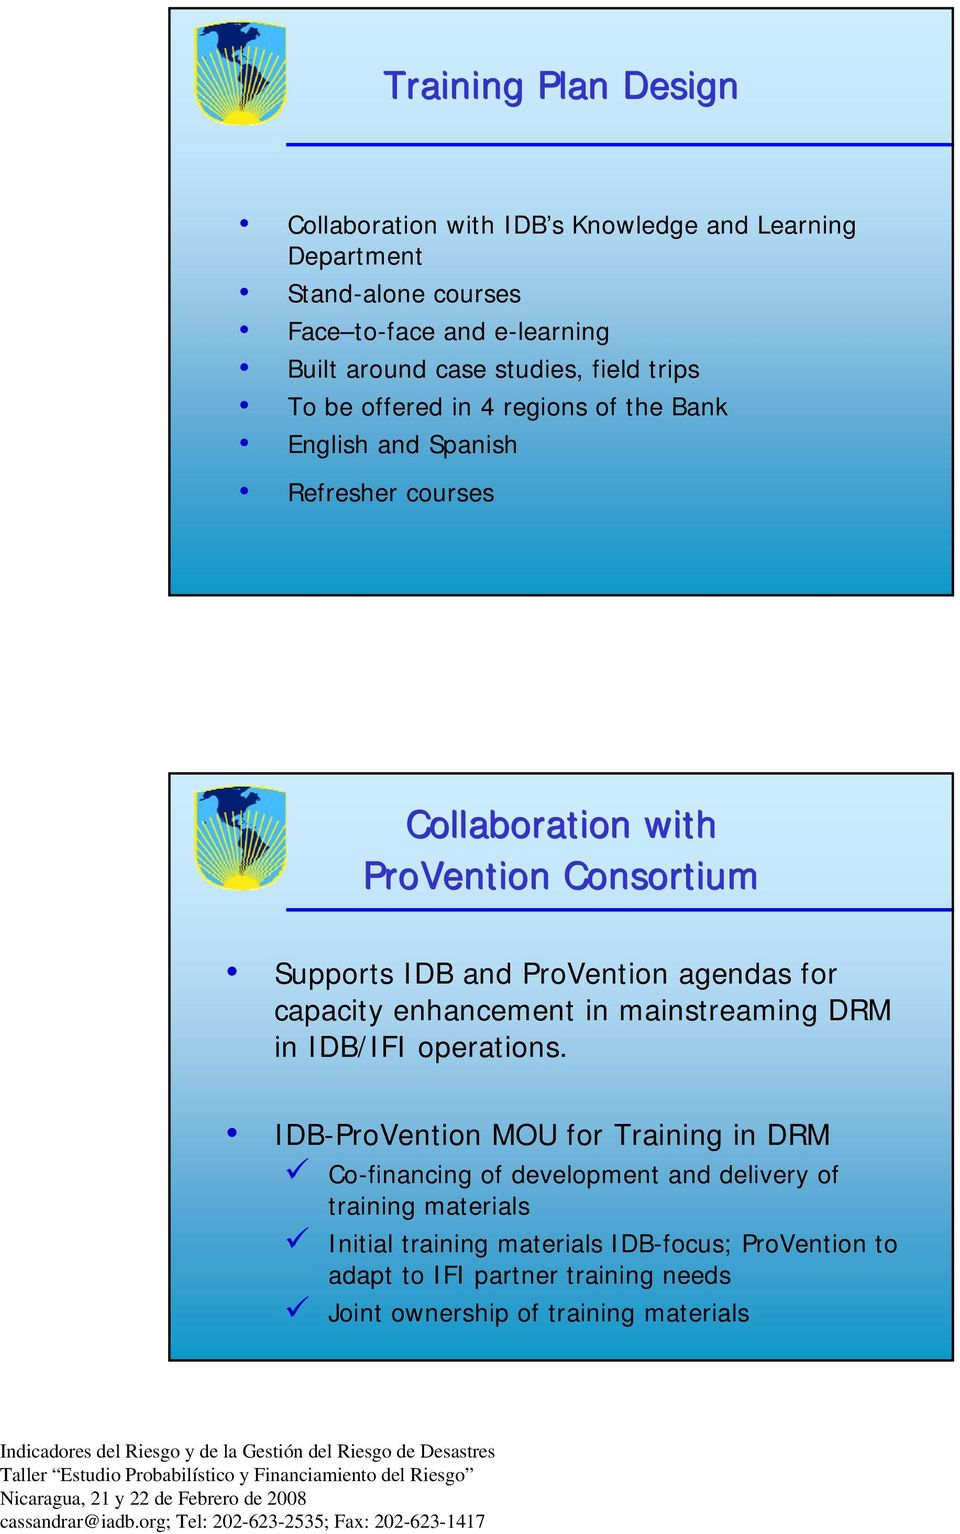 ProVention agendas for capacity enhancement in mainstreaming DRM in IDB/IFI operations.